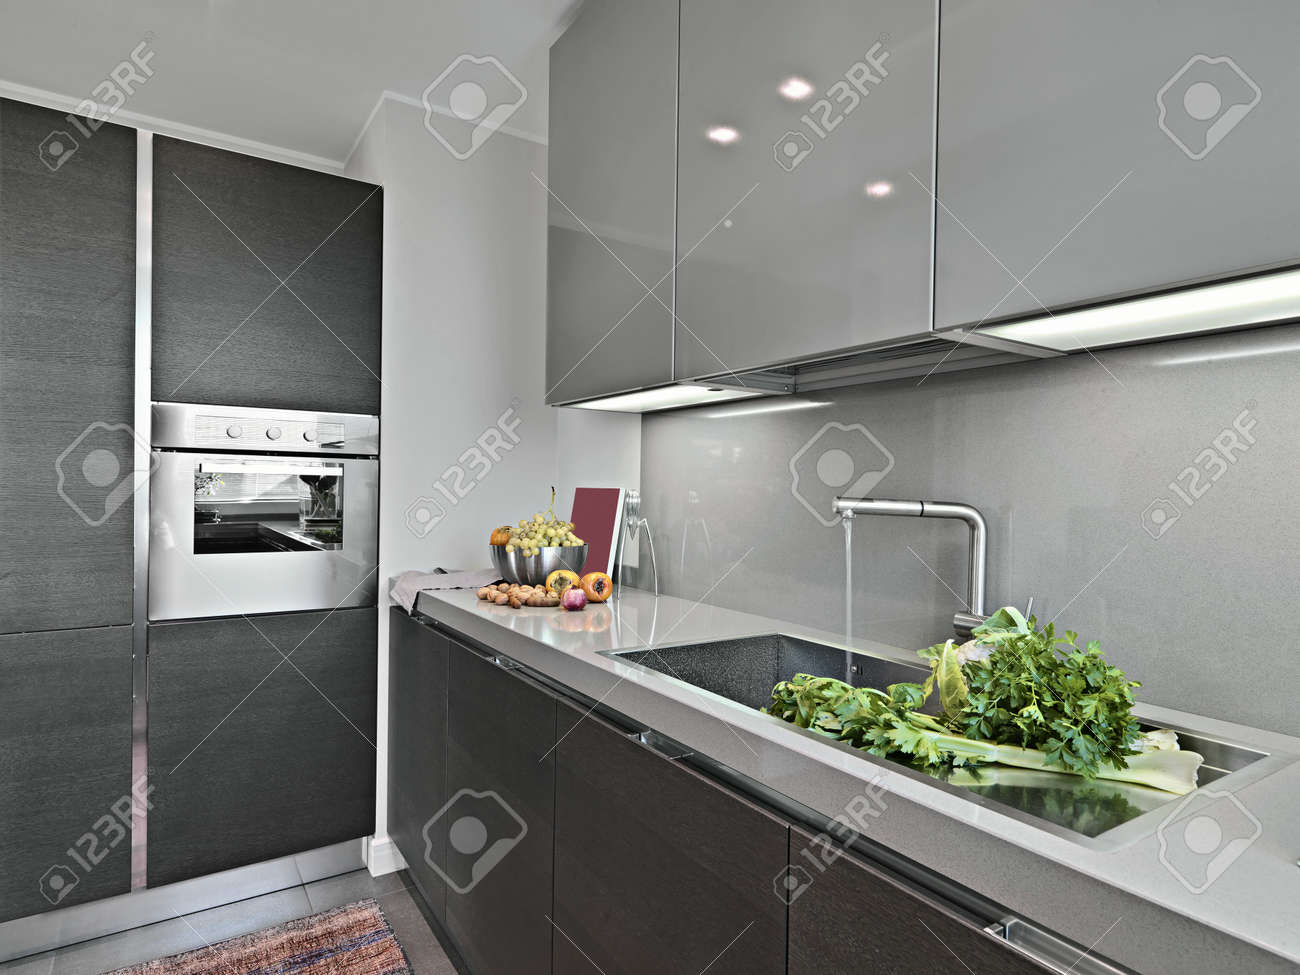 vetables near to sink in a modern kitchen Stock Photo - 16486977